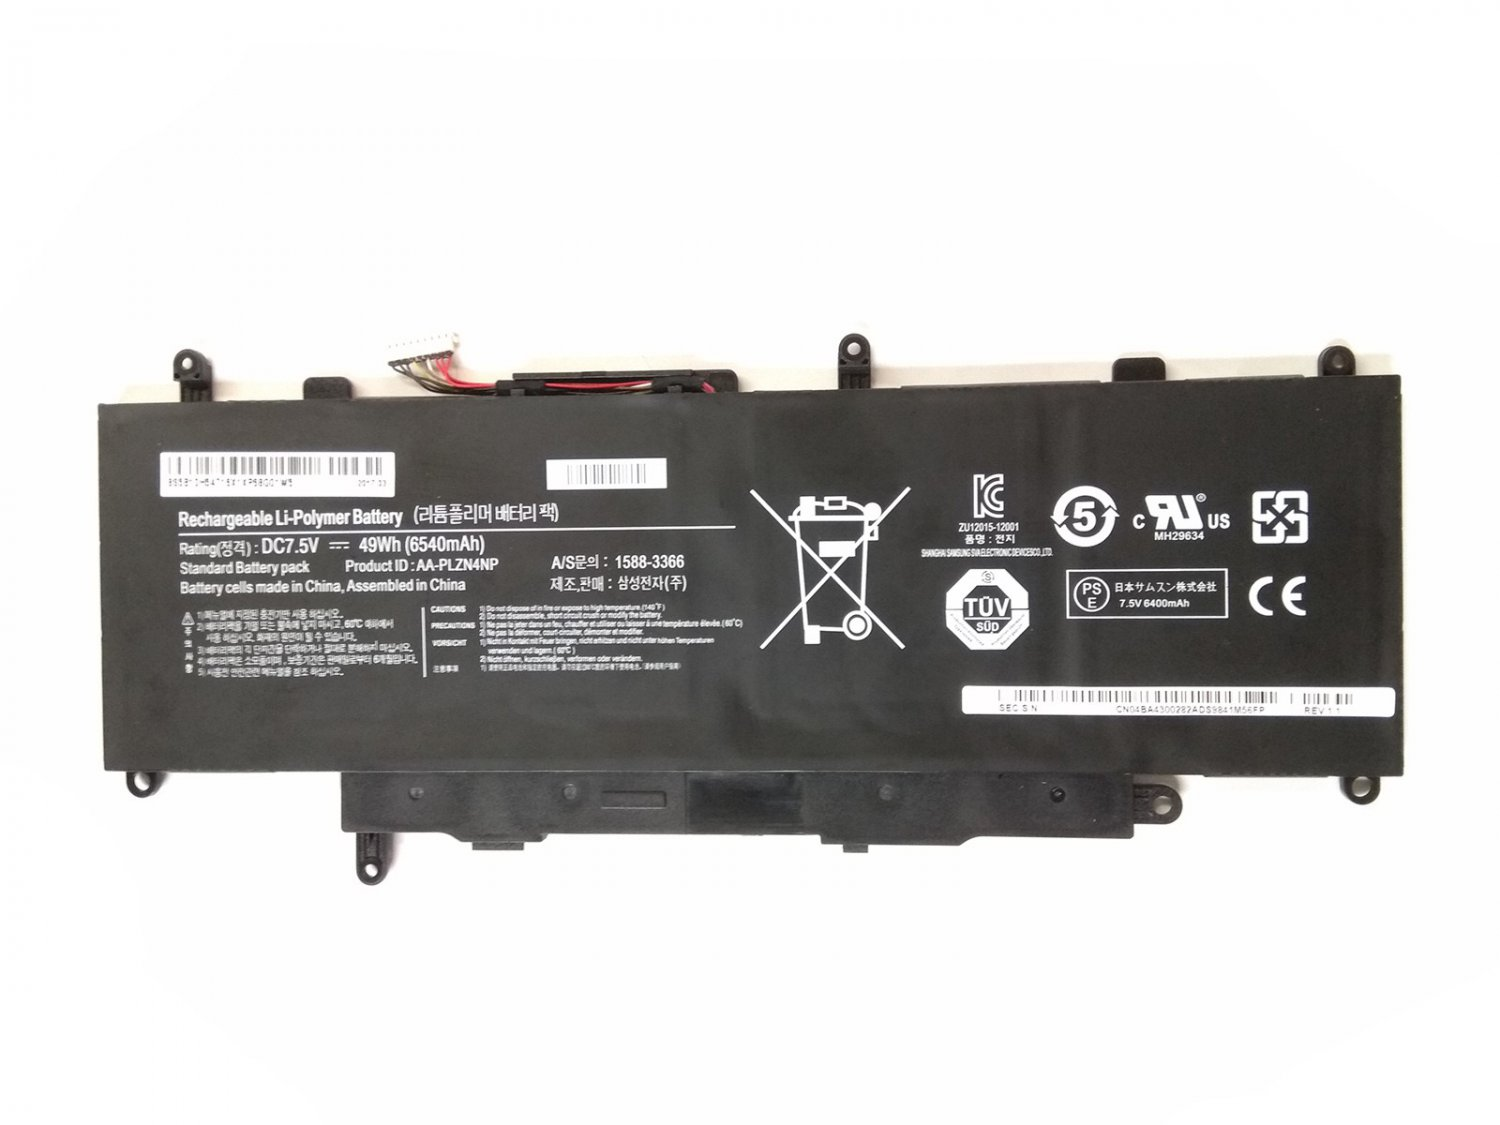 AA-PLZN4NP Battery For Samsung ATIV XE700T1C-A03PL XE700T1C-A05UK